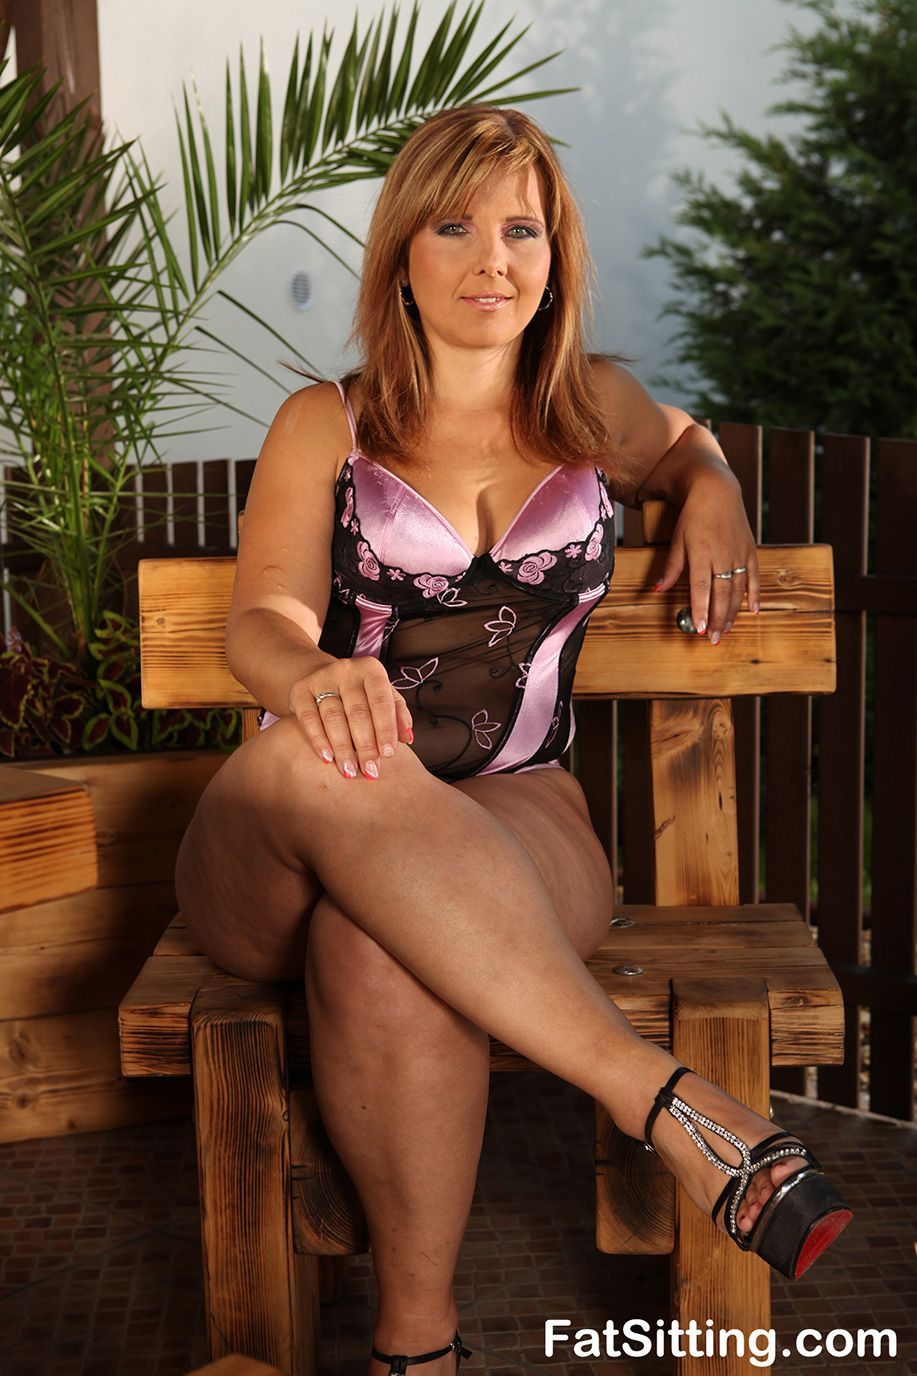 cougar porn galleries - Do you love fat girls getting fucked deep and hard? Then you willl like our  chubby porn pics site with tons of free BBW legs pics galleries.